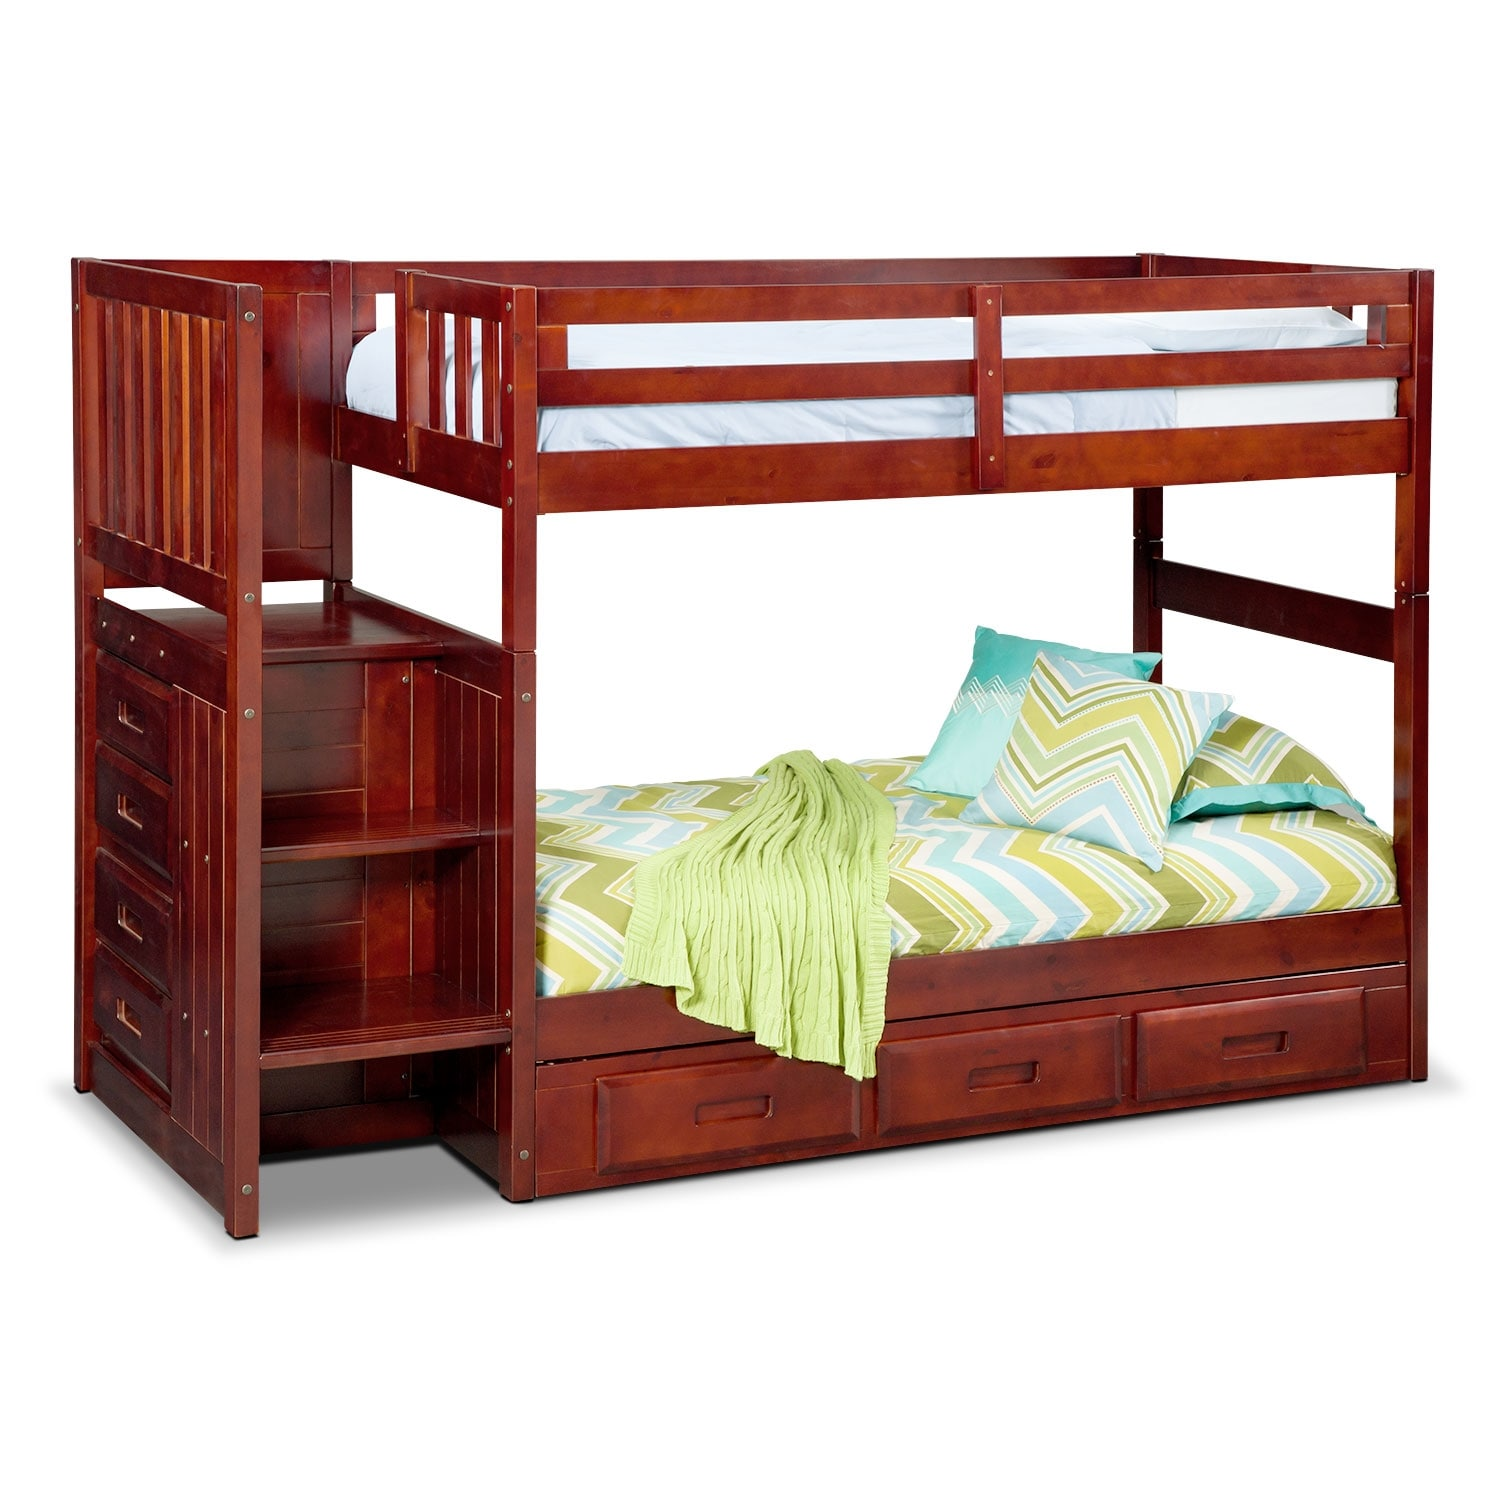 Delicieux Ranger Twin Over Twin Bunk Bed With Storage Stairs U0026 Underbed Drawers    Merlot